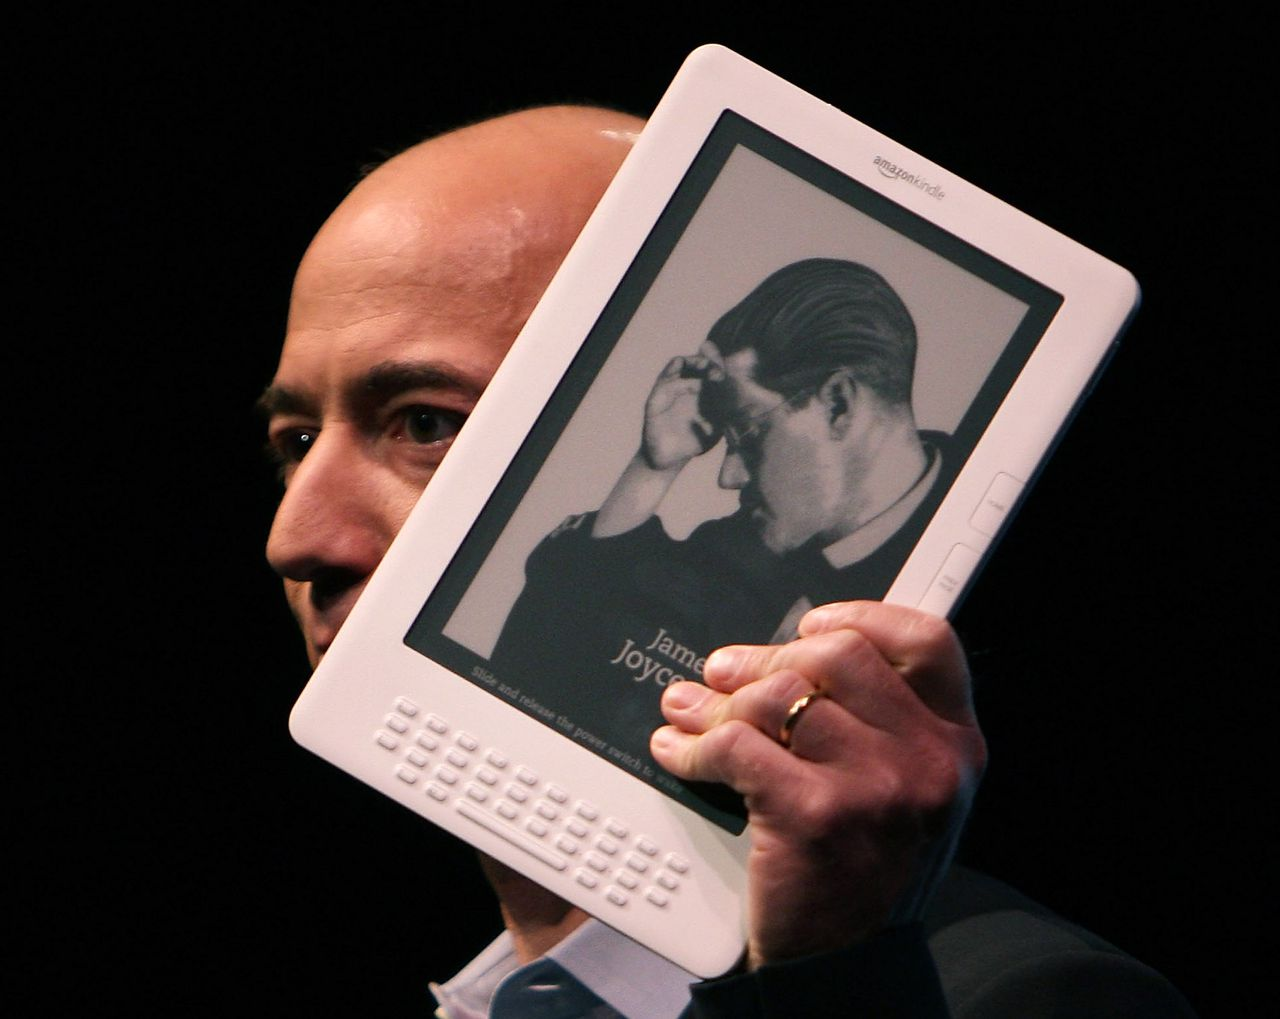 Nieuwe Kindle is beter voor kranten New York, 7 mei. Bestuursvoorzitter Jeff Bezos van Amazon toonde gisteren een nieuwe versie van de e-reader Kindle bij een presentatie samen met The New York Times. Met een scherm van 9,7 inch is het apparaat groter dan de huidige versie (6 inch), en daarmee geschikter voor kranten. Onder meer The New York Times, The Washington Post en The Boston Globe geven lezers korting op het apparaat, dat in de winkel 489 dollar (367 euro) moet kosten. De mobiele internetverbinding werkt alleen nog in de VS. Foto AFP NEW YORK - MAY 06: Amazon CEO Jeff Bezos holds the new Kindle DX, which he unveiled at a press conference at the Michael Schimmel Center for the Arts at Pace University May 6, 2009 in New York City. Bezos was joined by Arthur Sulzberger, Jr., publisher of The New York Times and chairman of The New York Times Company. The Kindle DX, a new purpose-built reading device, features a larger 9.7-inch electronic paper display, built-in PDF reader, auto-rotate capability, and storage for up to 3,500 books. Amazon has also partnered with select major newspapers to offer readers discounts on the DX in return for long-term subscriptions. The Kindle DX is available for pre-order starting today for $489.00 USD and will ship this summer. Spencer Platt/Getty Images/AFP == FOR NEWSPAPERS, INTERNET, TELCOS & TELEVISION USE ONLY ==